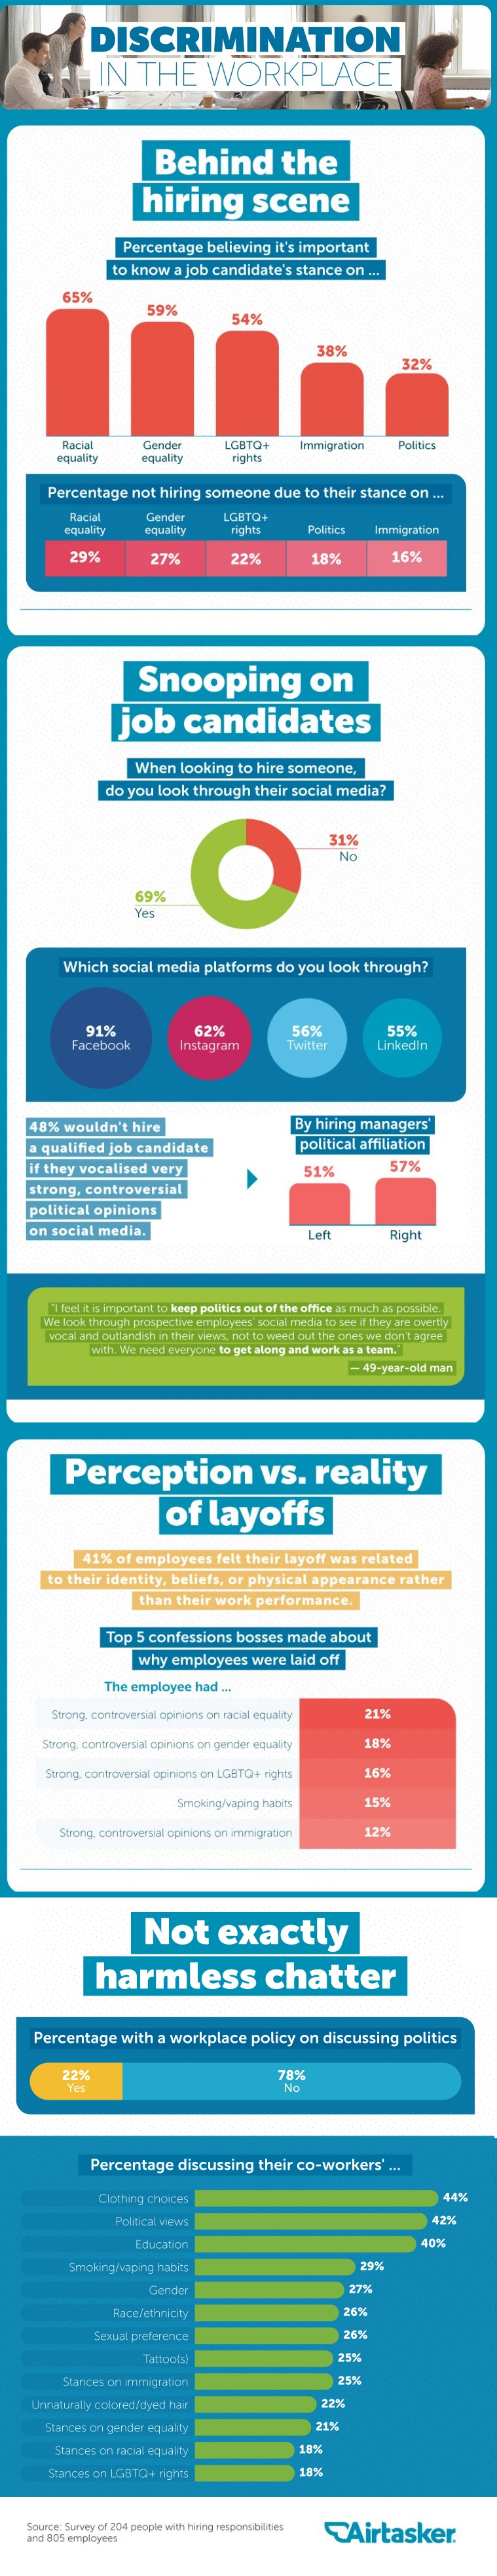 Infographic looks at how employers use social media profiles to assess candidates